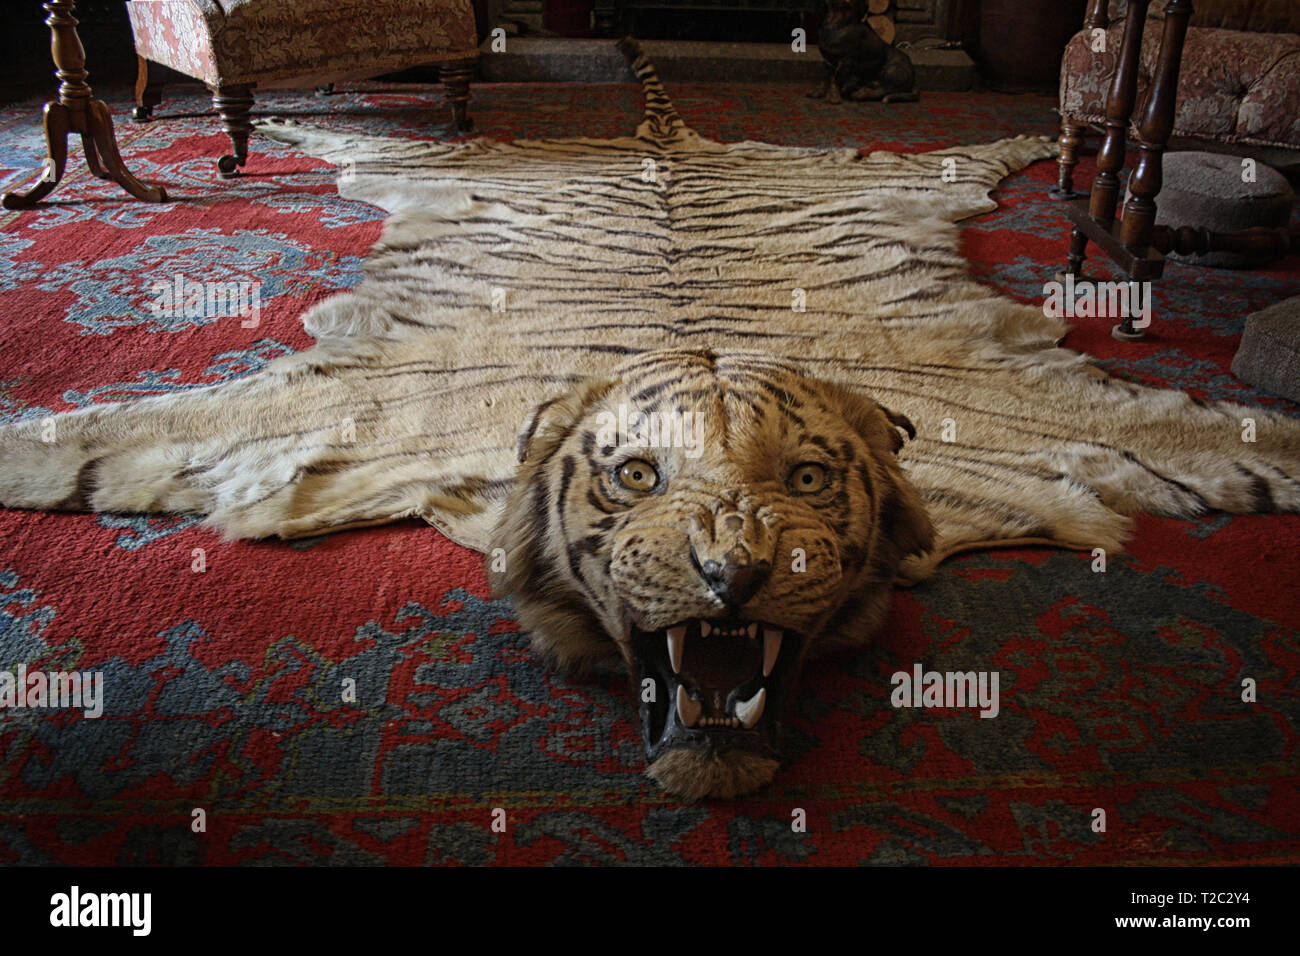 An incredible rug made with a tiger's fur. The animal's gaze still inspires fear. Carpet in a Victorian style living room. National Trust - Lanhydrock - Stock Image